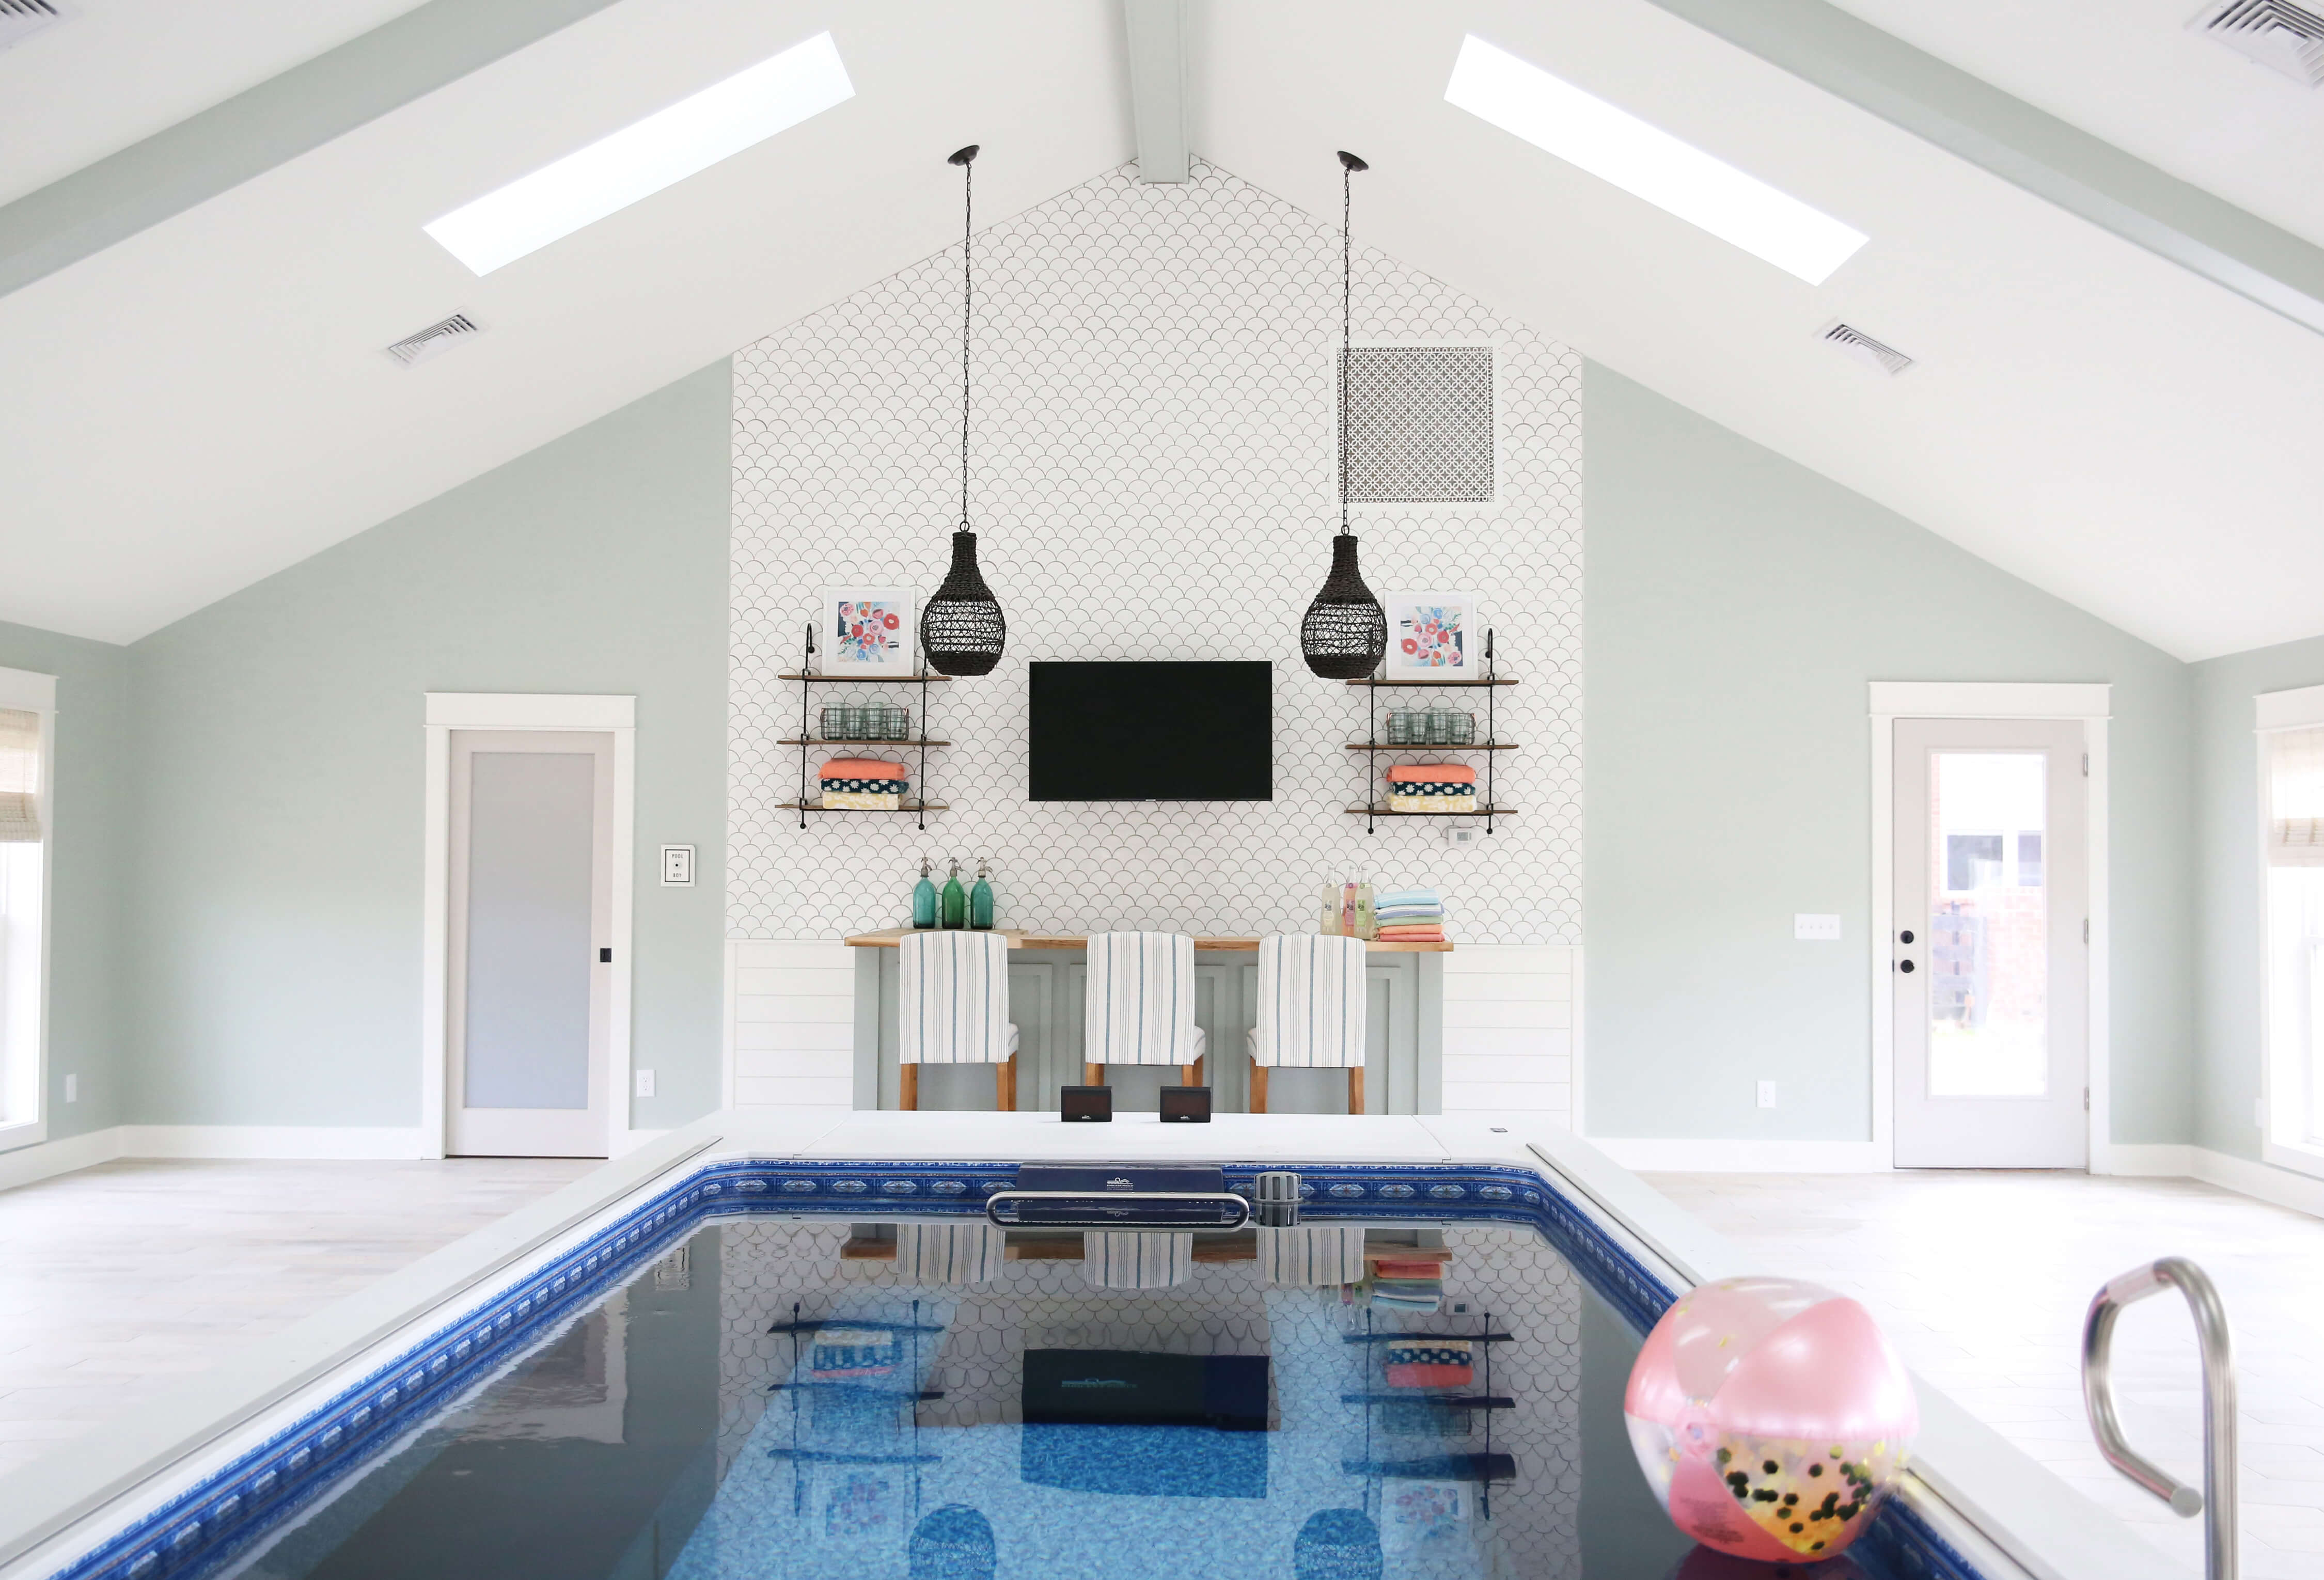 Pool House Design | Interior Designed Pool Room | Endless Pool Photos